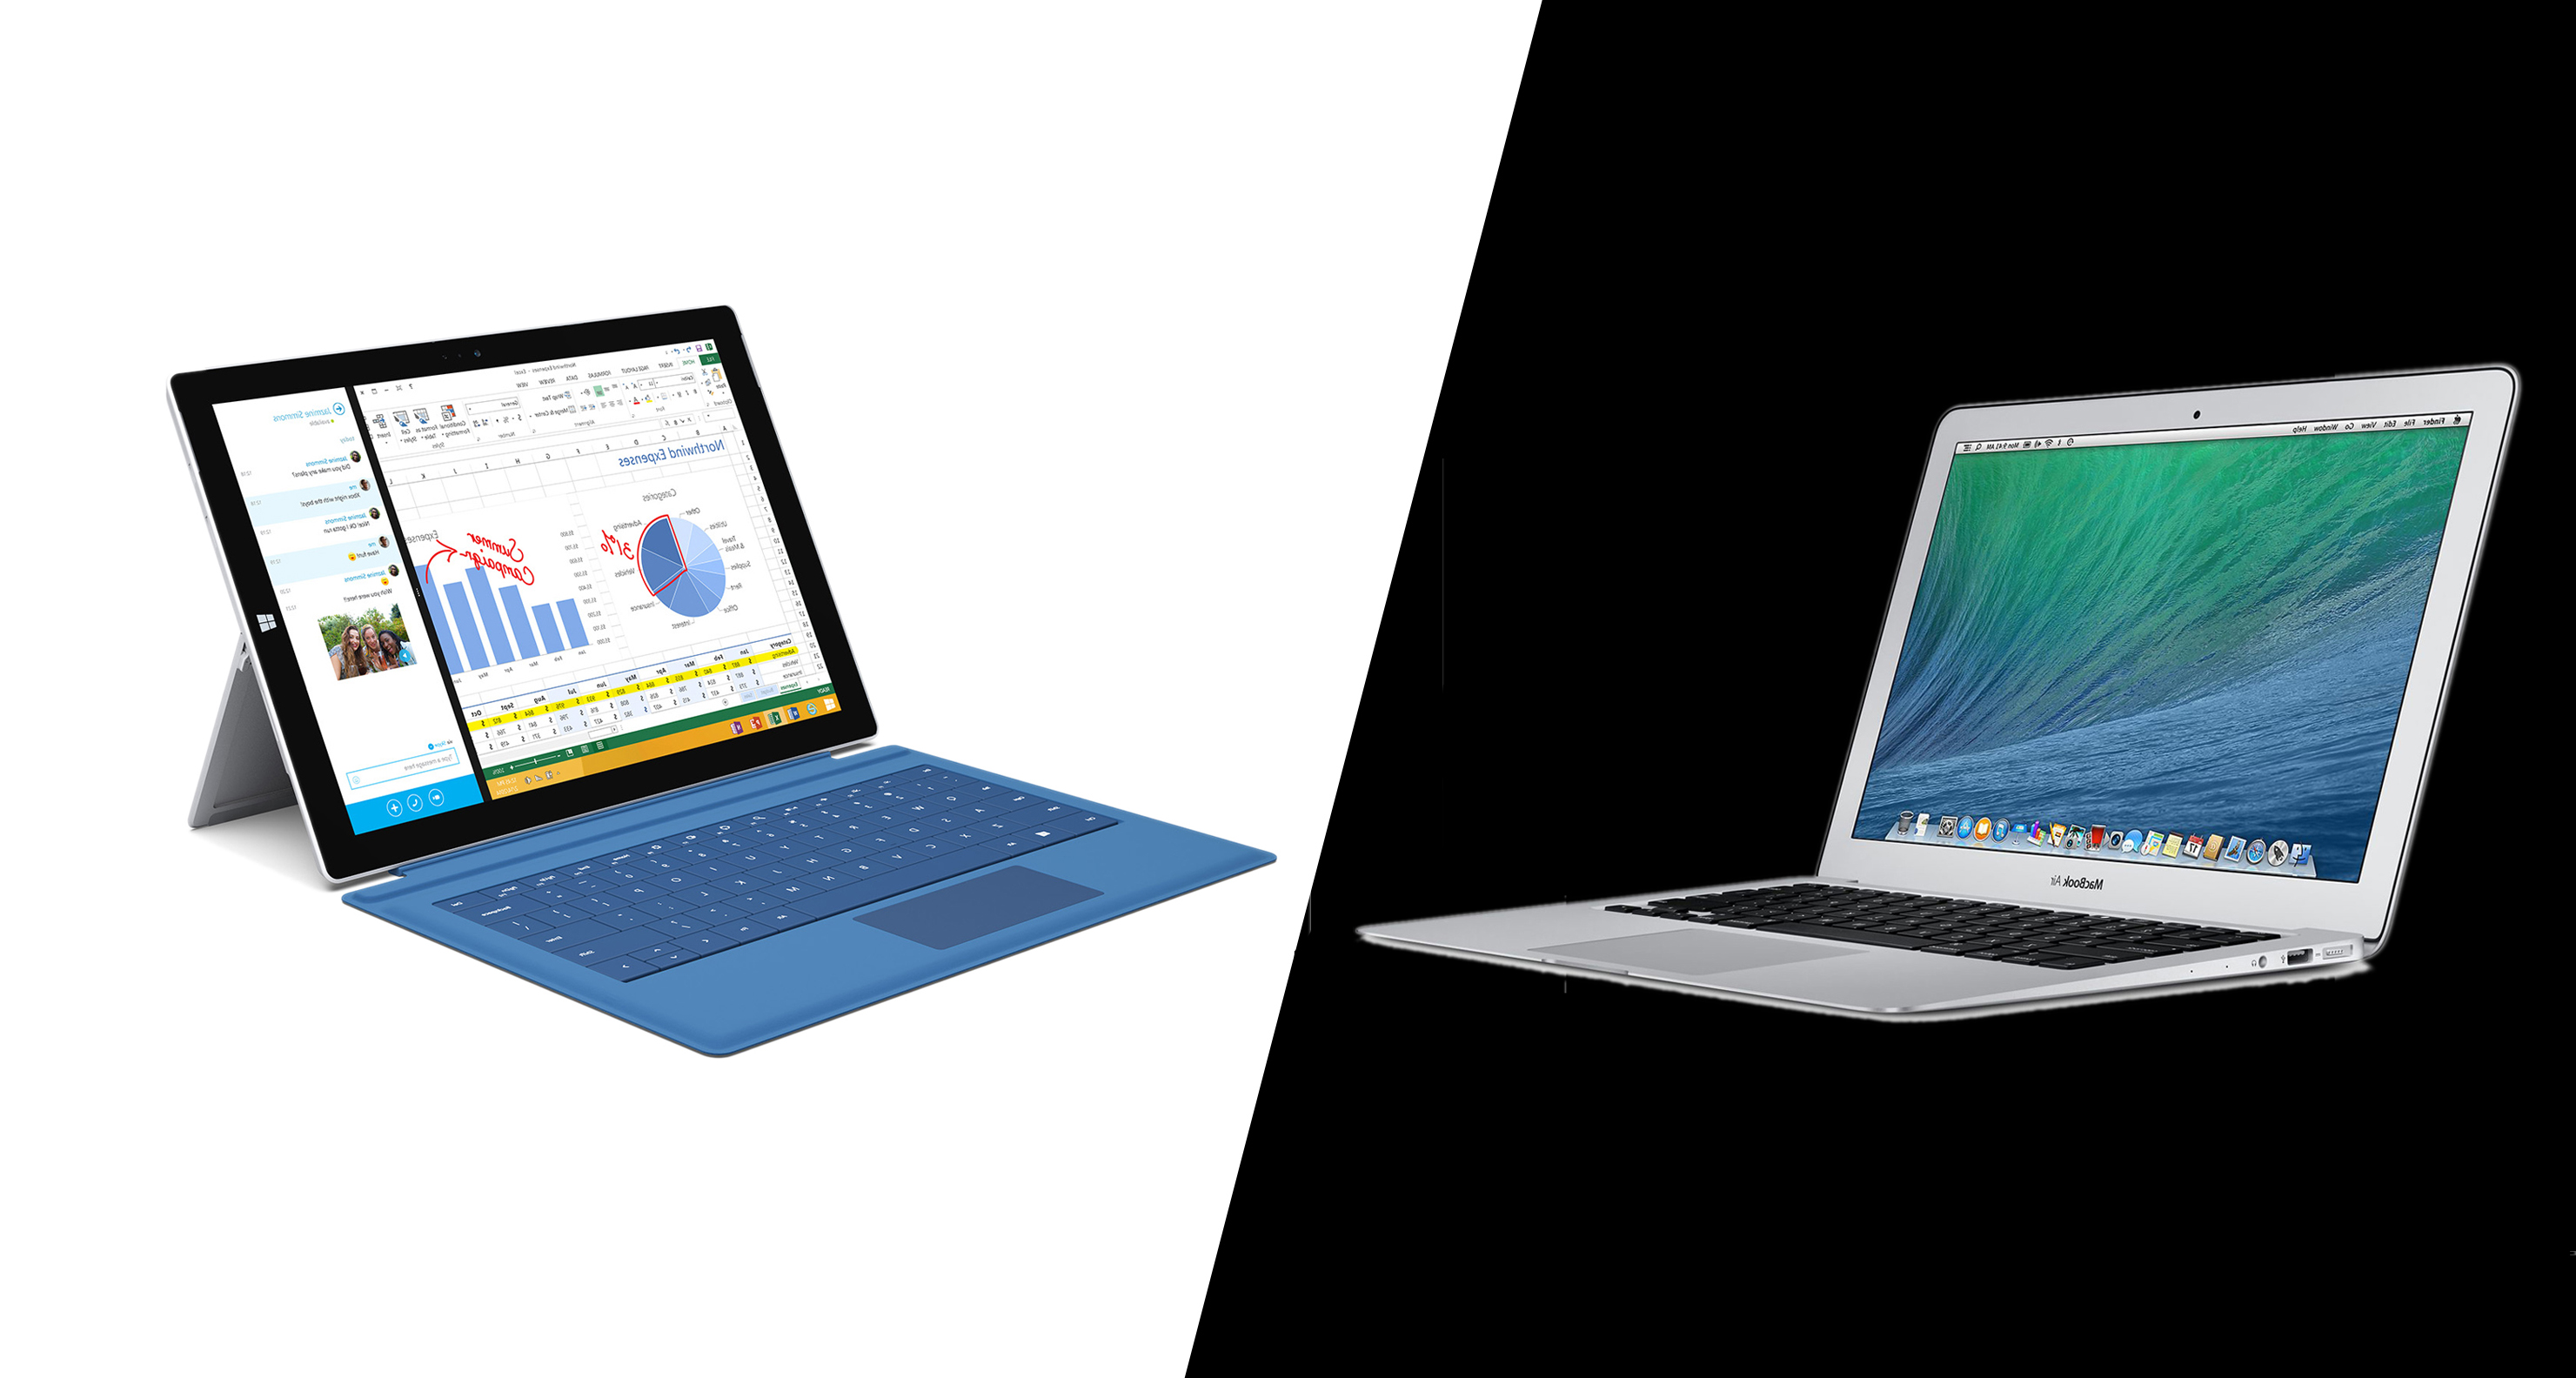 Surface Pro 3 vs. MacBook Air (2014): Which is Better for Business?